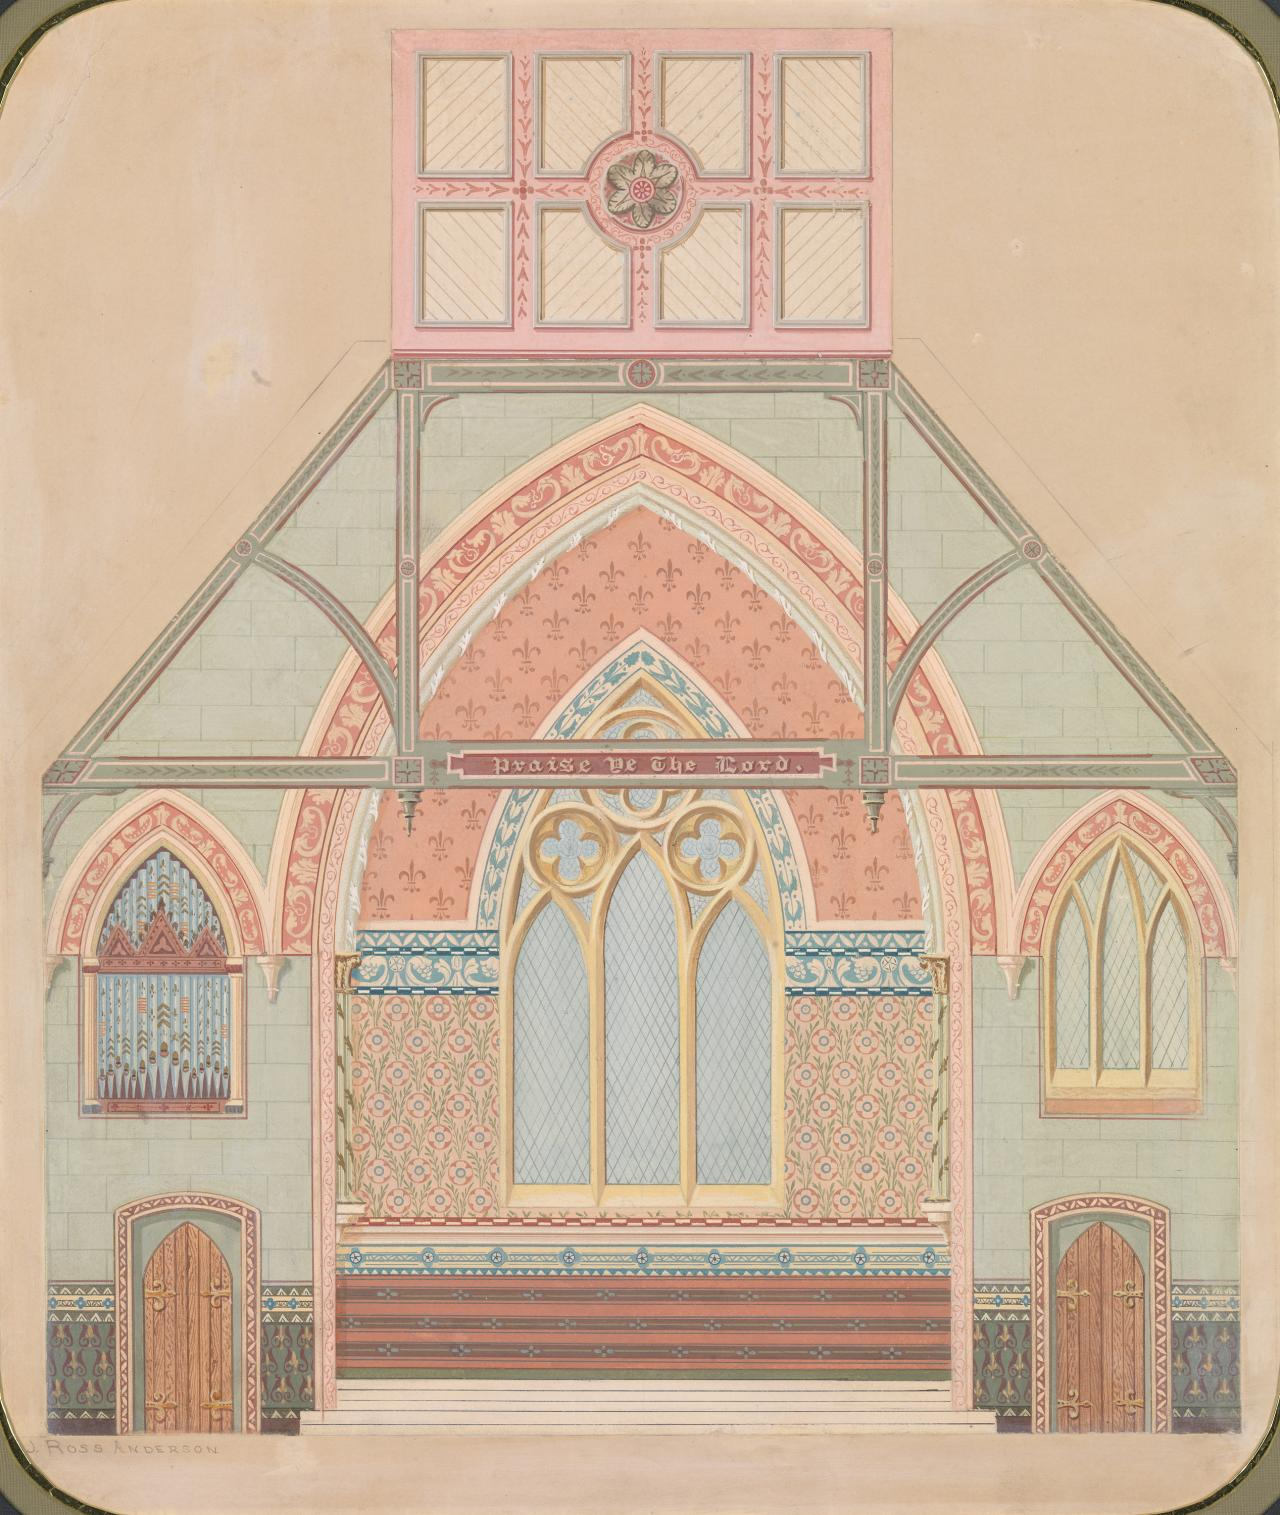 Proposed scheme of decoration for unknown church